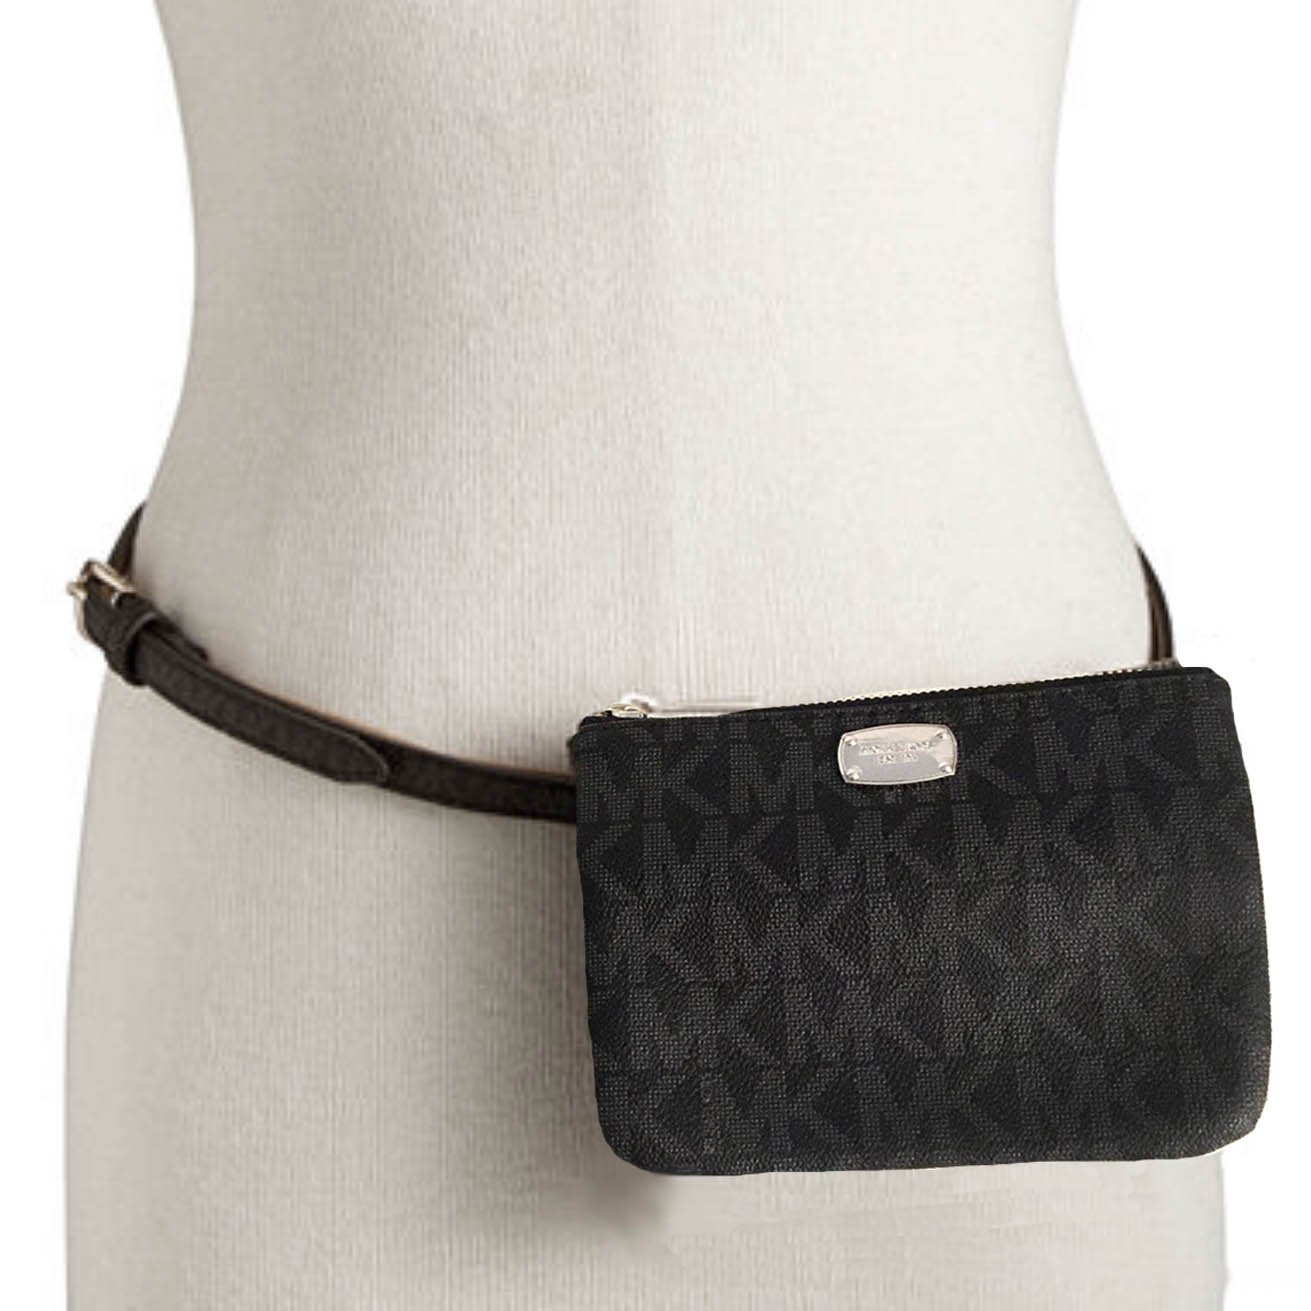 96afc538b66fd2 Amazon.com: Michael Kors MK Signature Belt Wallet Fanny Pack, Travel  Leather Medium: Sports & Outdoors